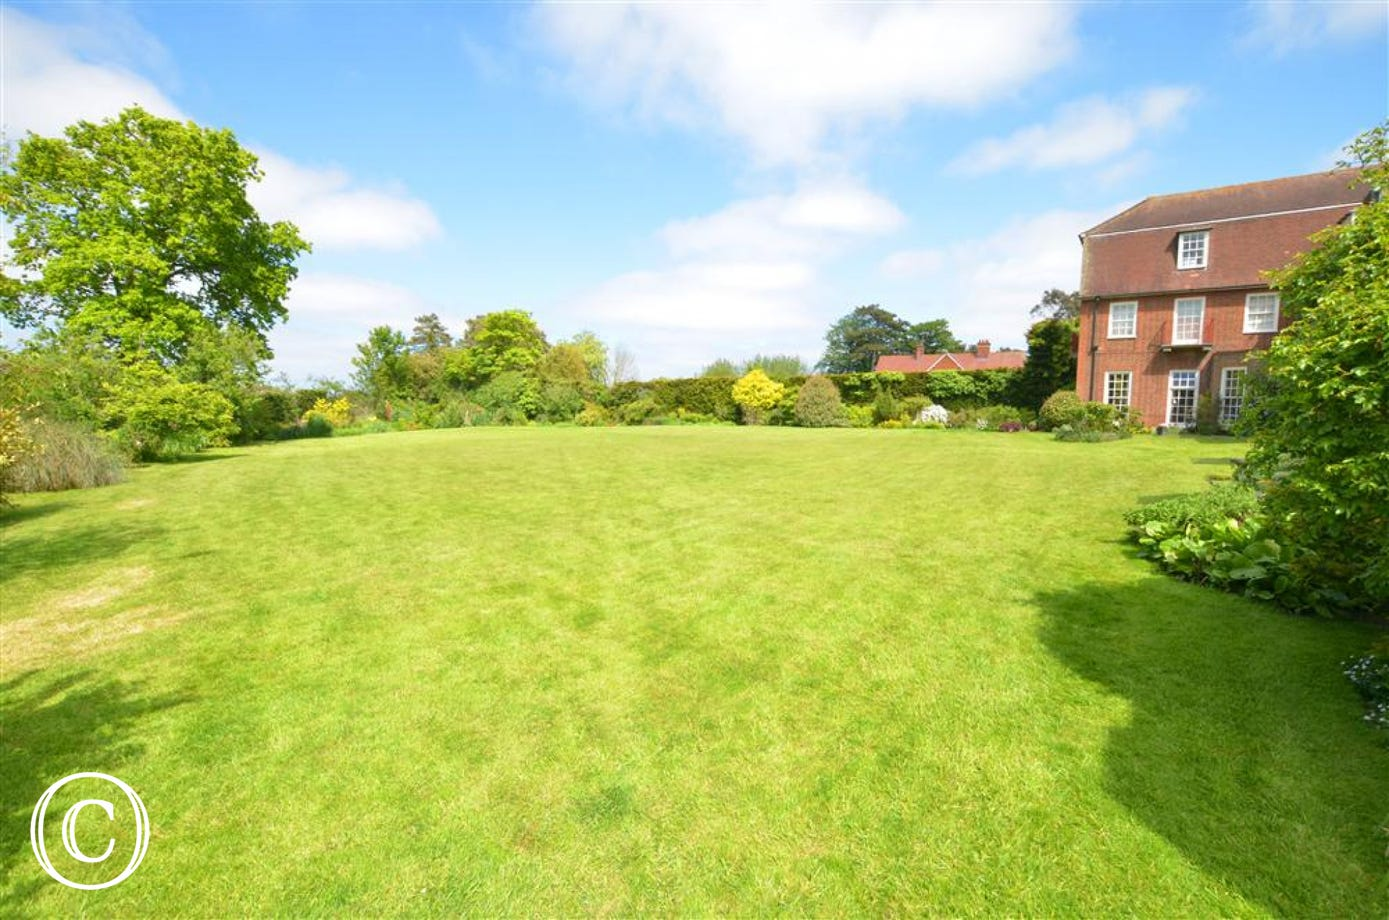 A spacious communal garden that is immaculately maintained